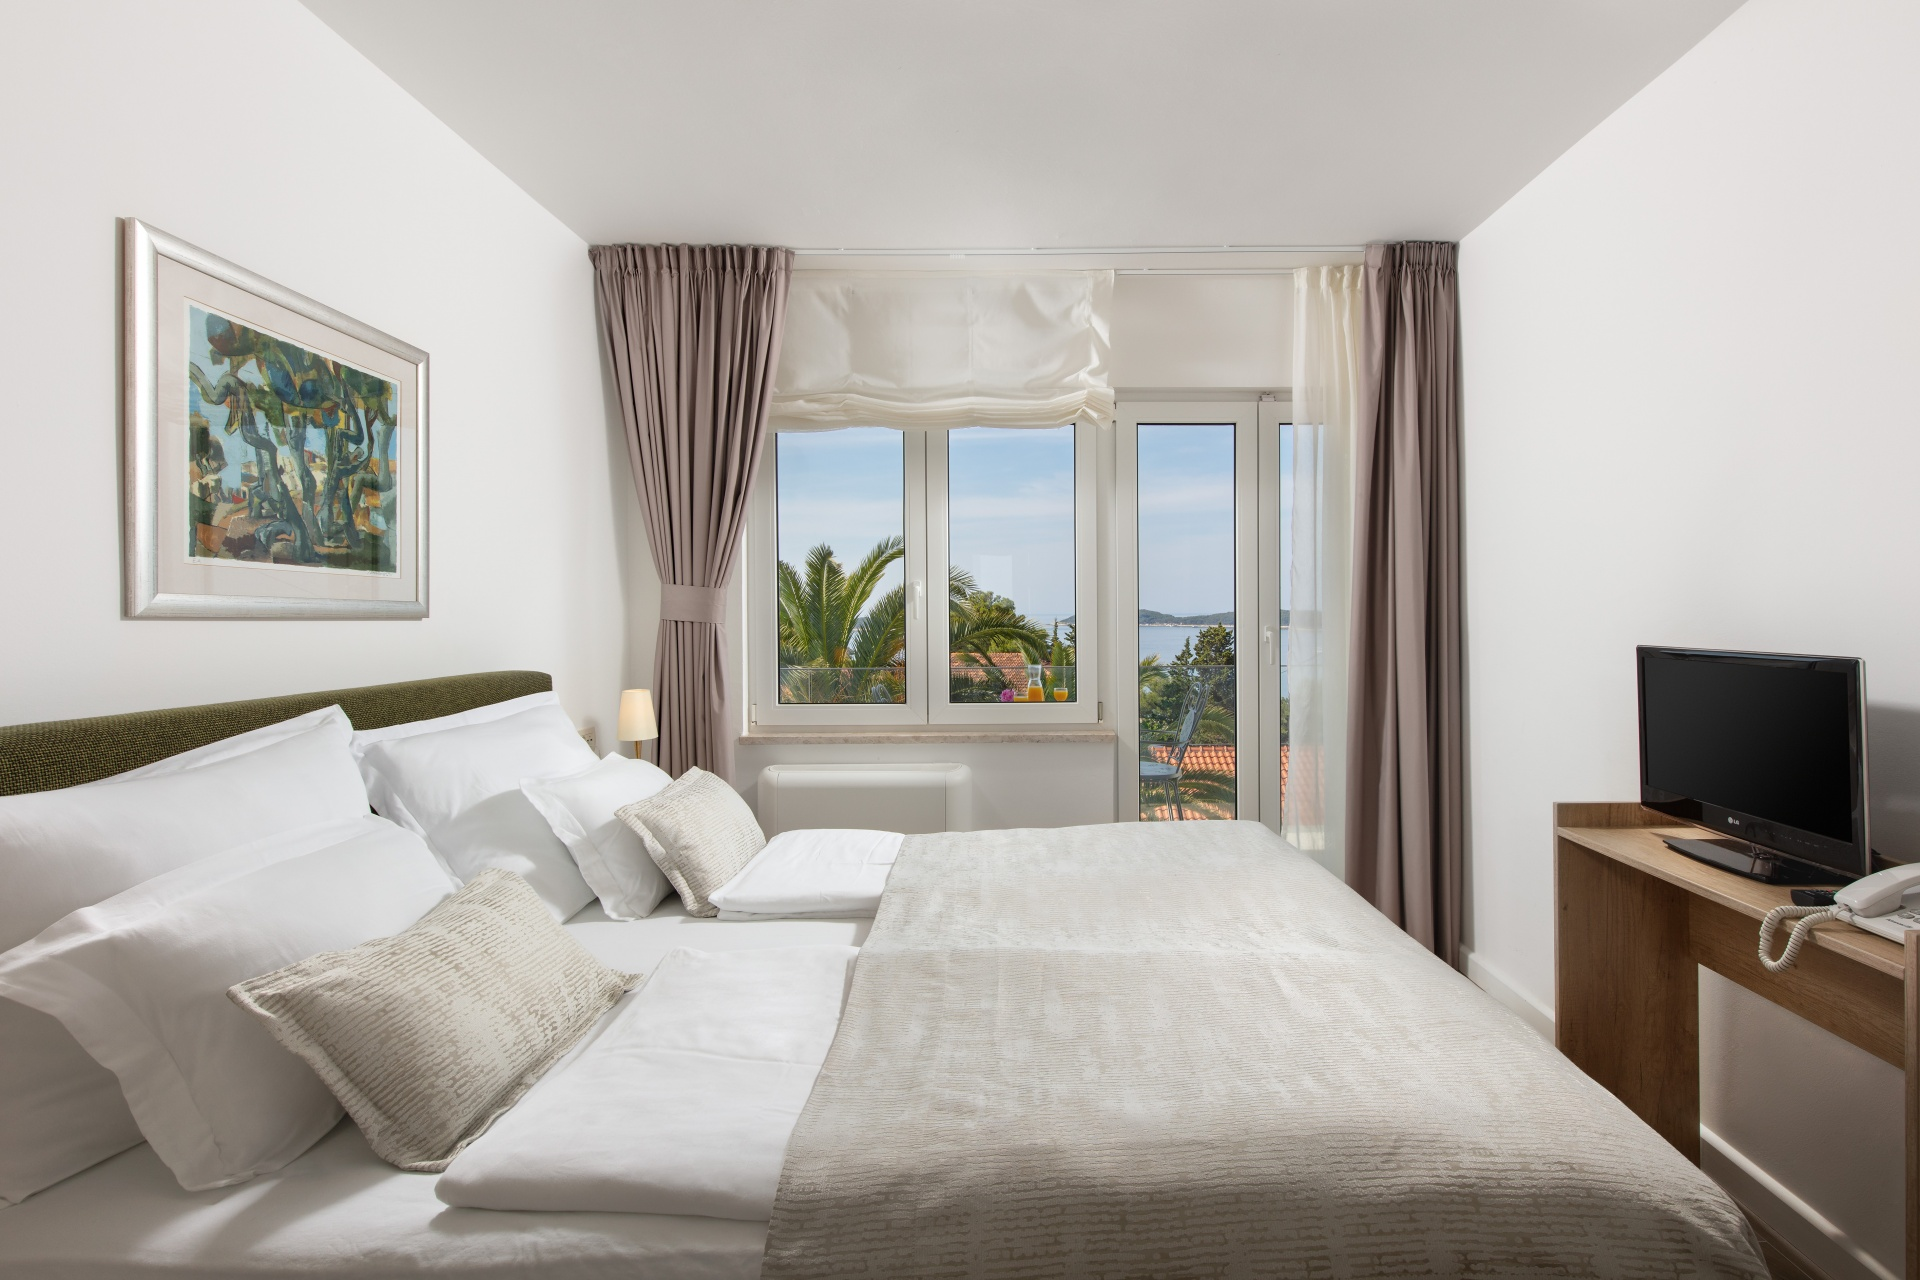 Hotel Pharia Hvar double bed room